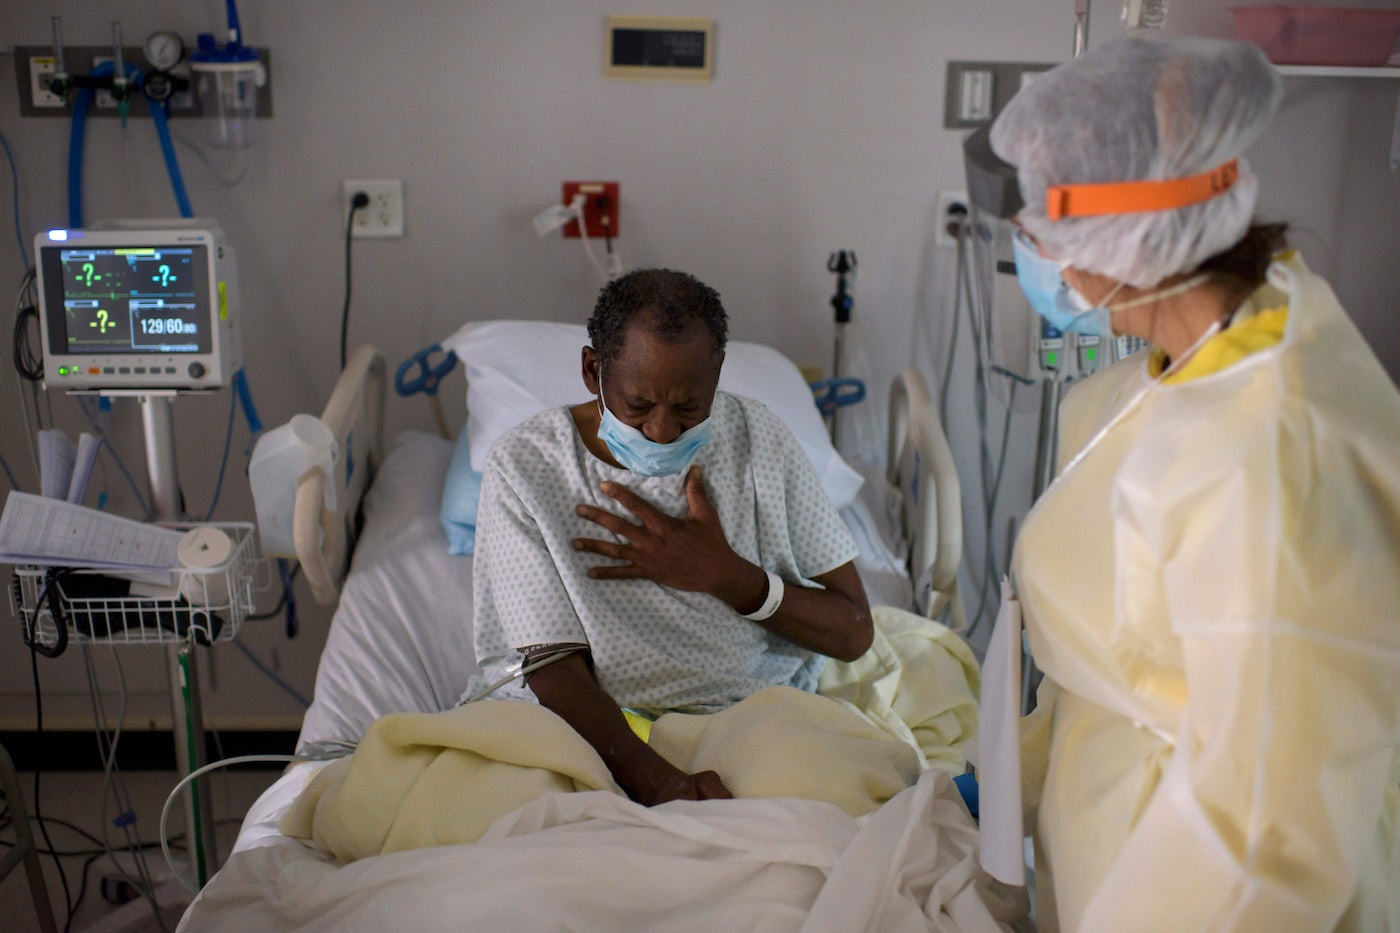 A health care worker tends to a Covid-19 patient in Houston.